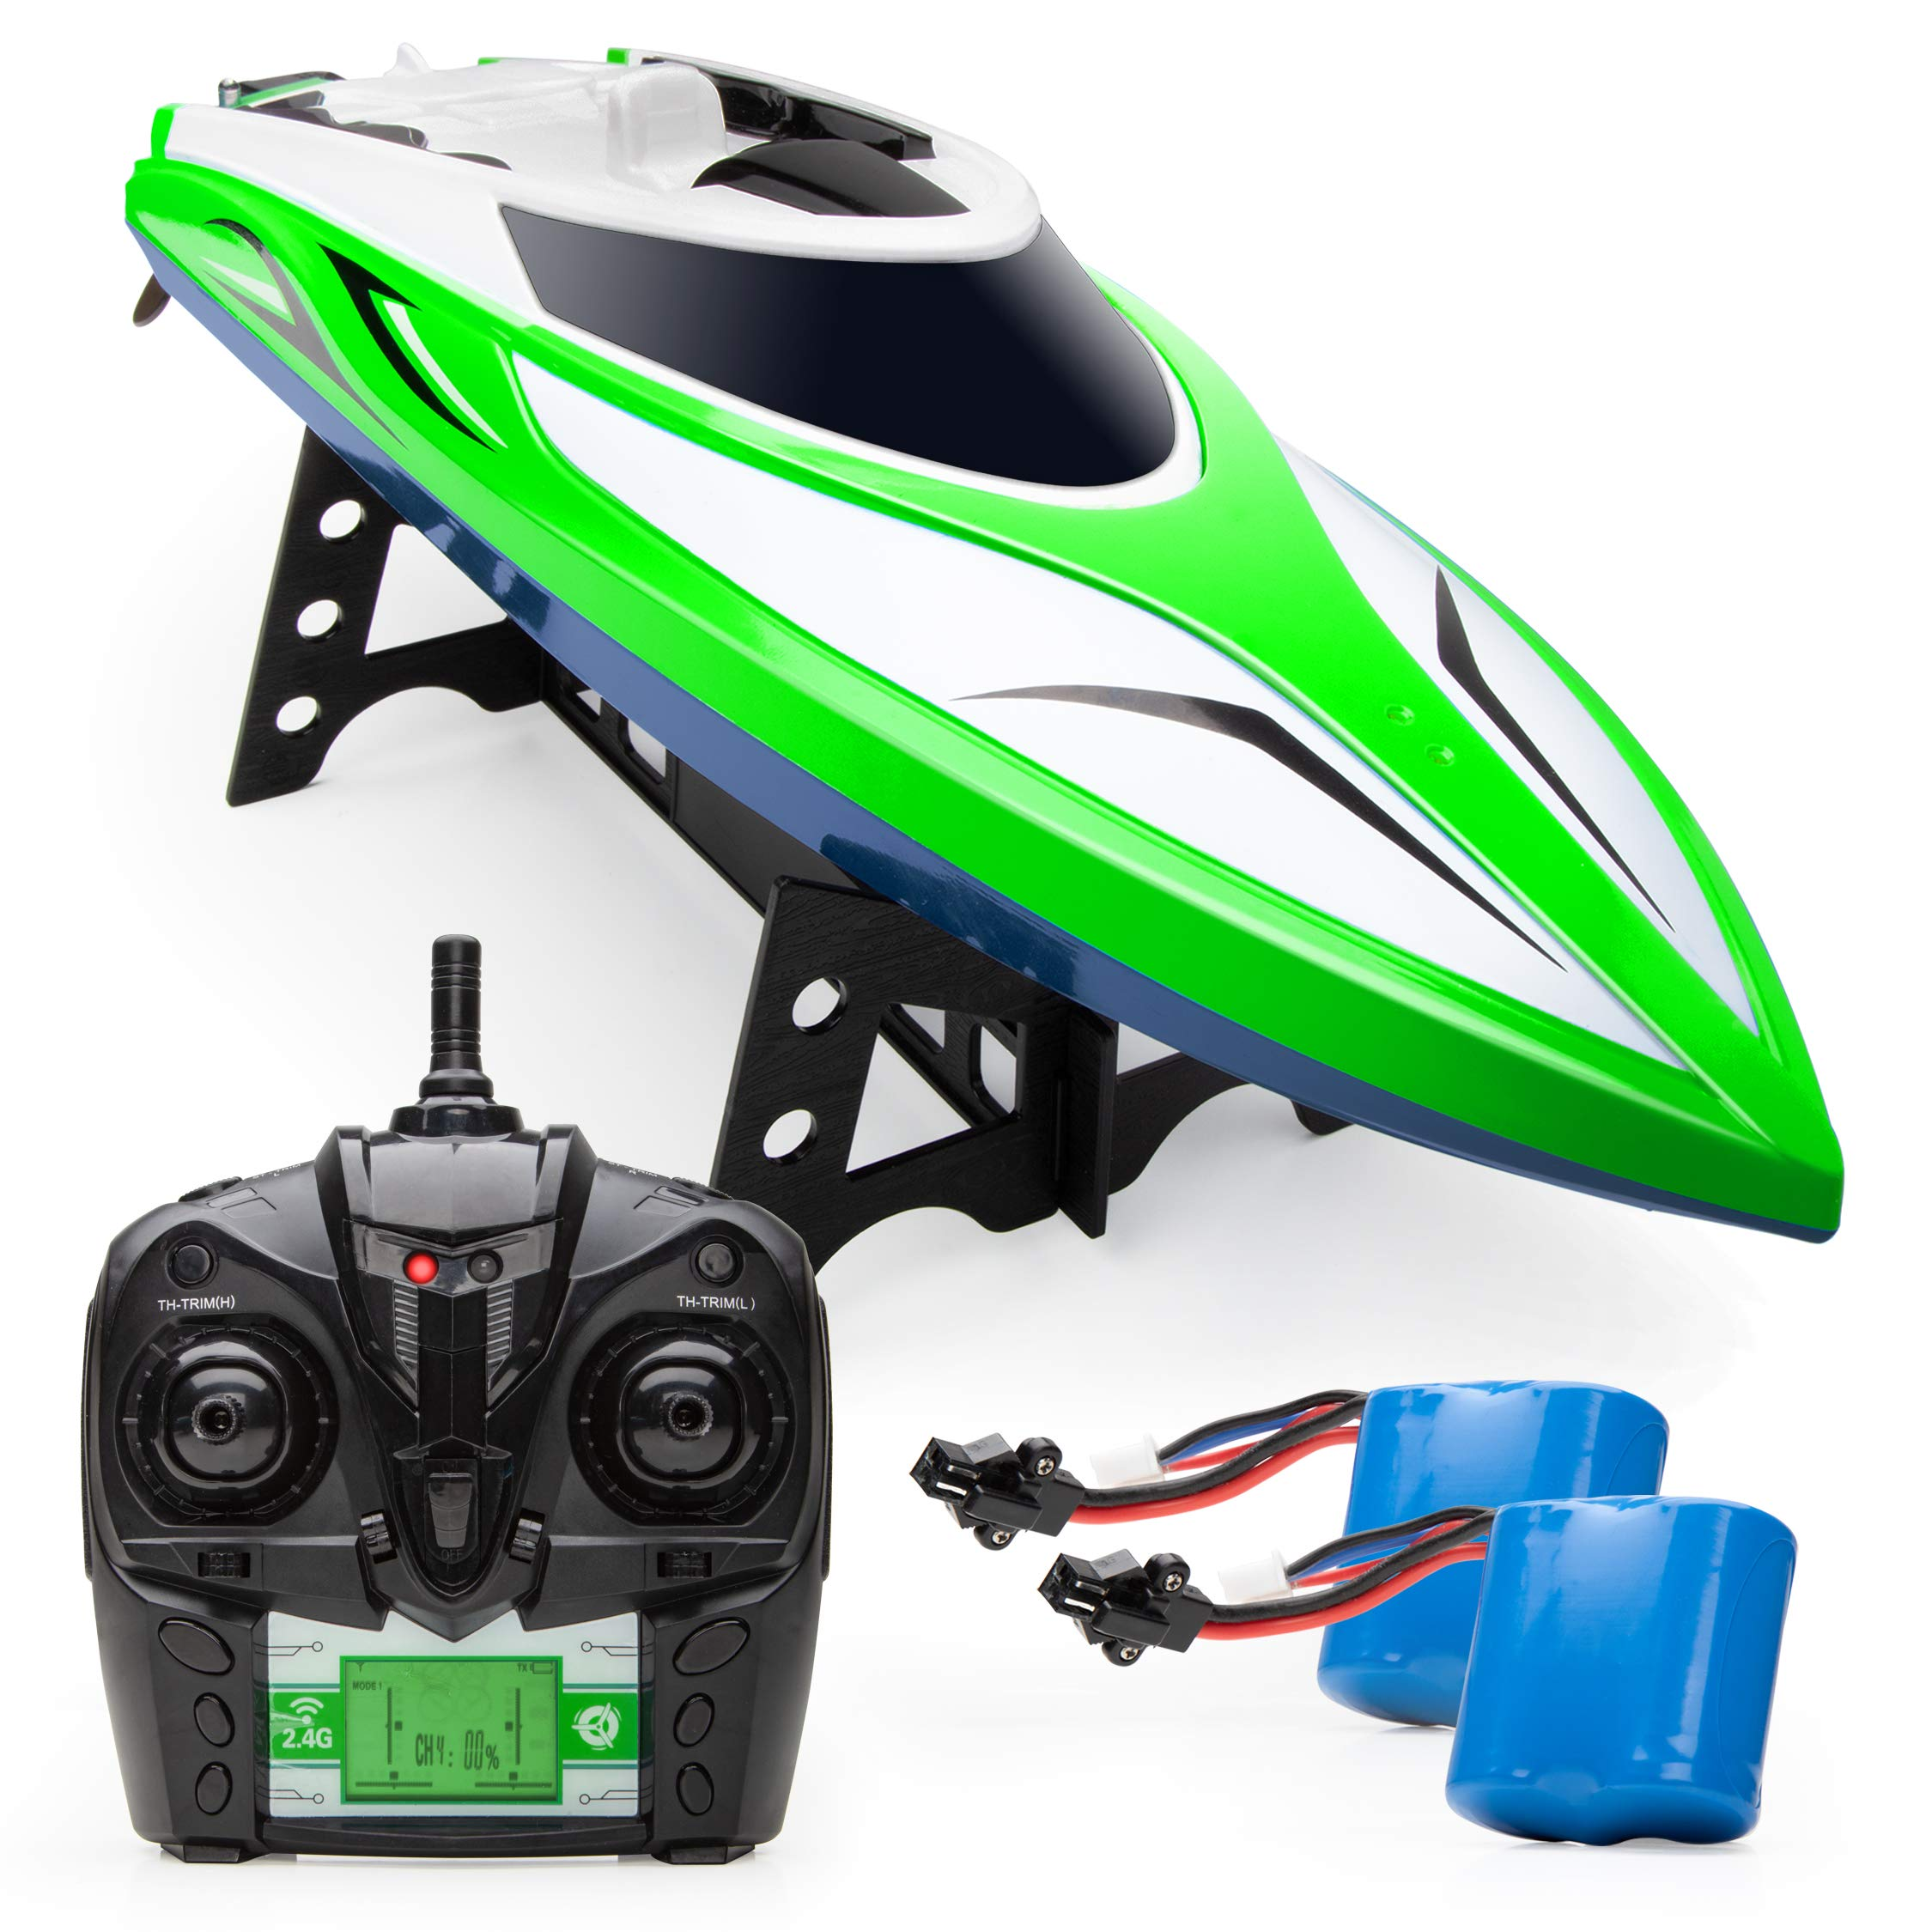 Force1 Velocity RC Boat - H102 Remote Control Boats for Pools and Lakes, 20+ mph High Speed Boat Toys (Green) by Force1